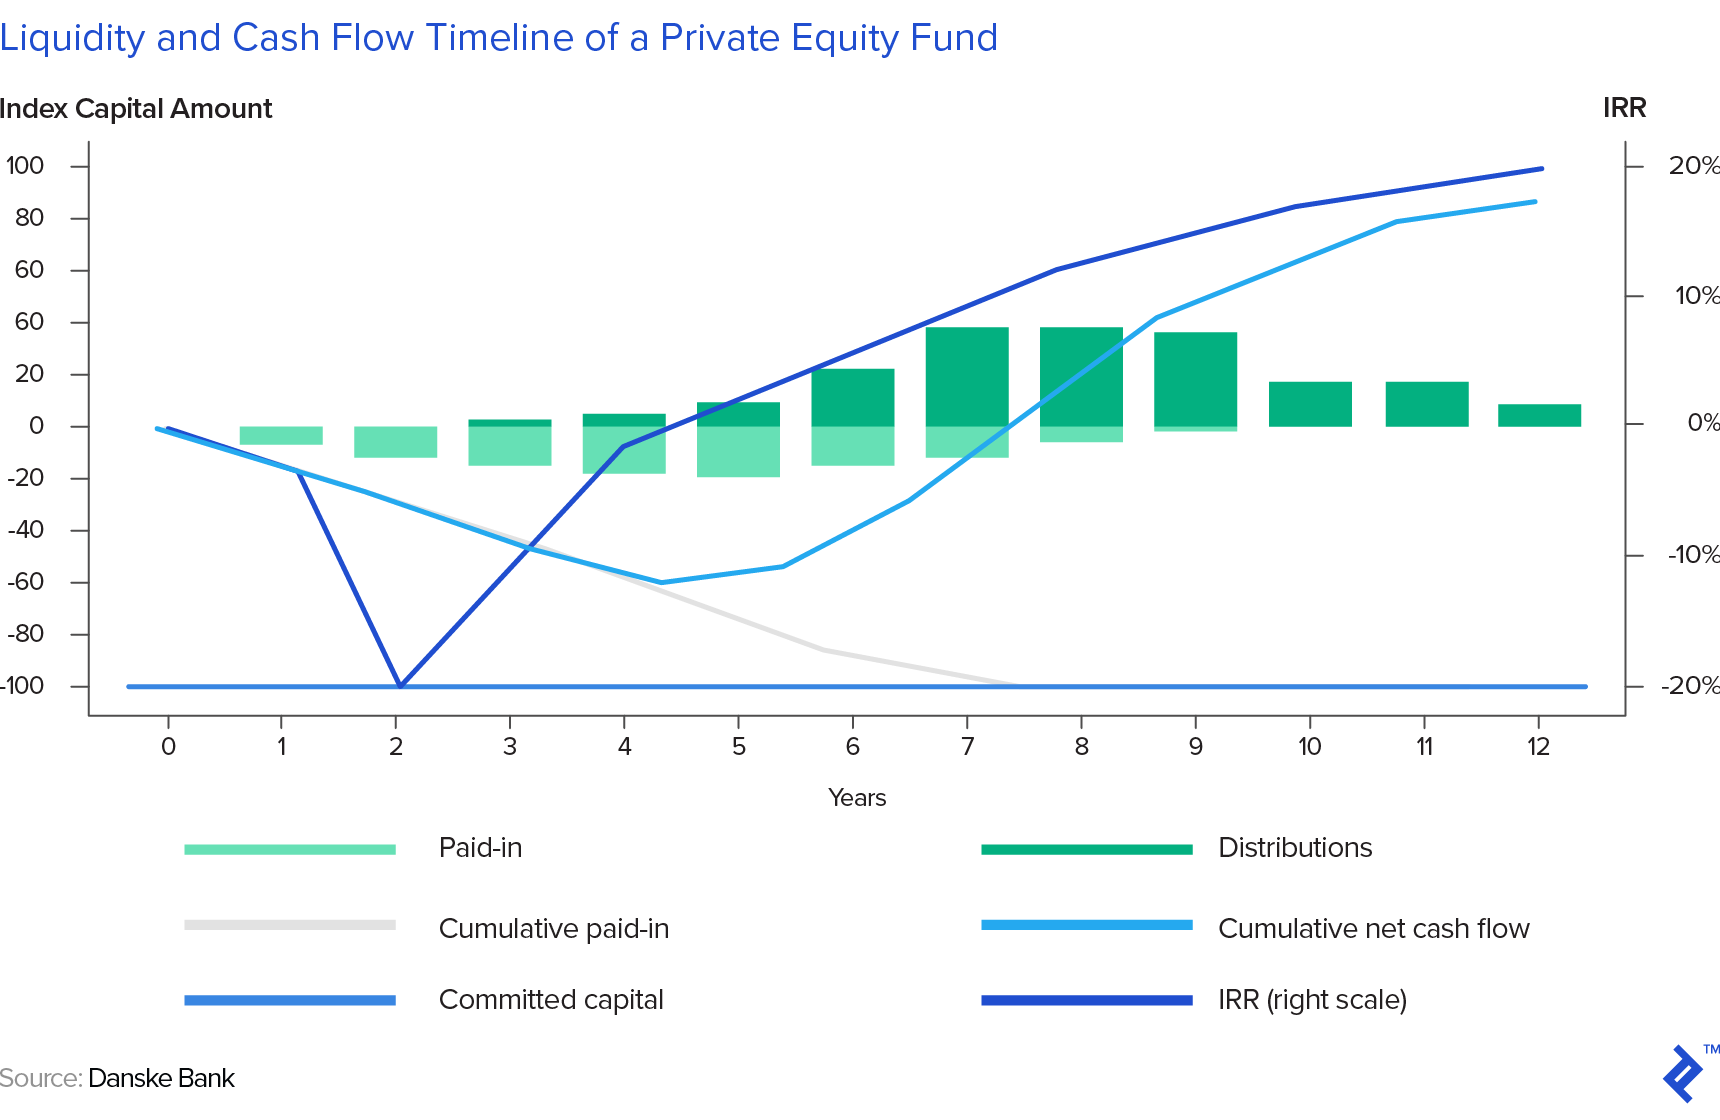 cash flow profile of a private equity fund